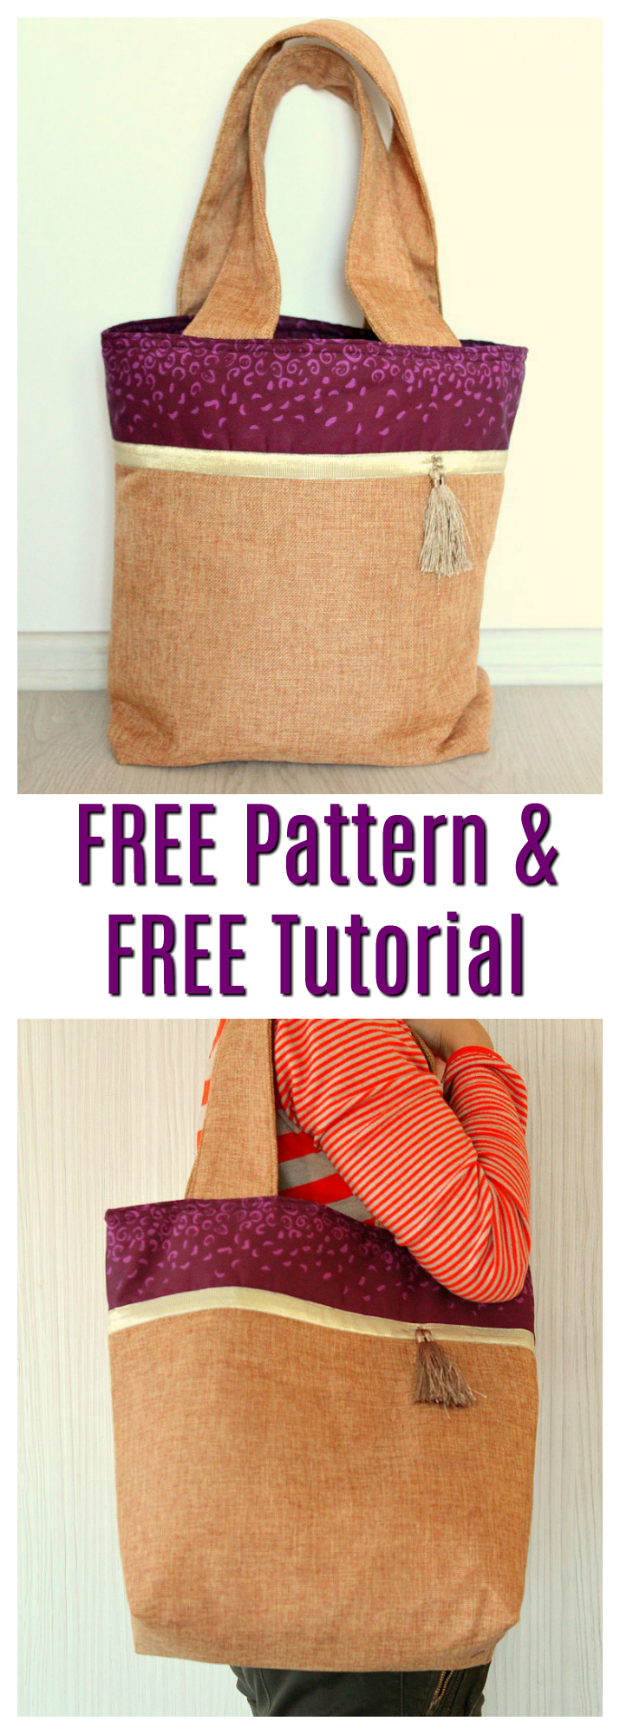 Here's a really great looking two-tone tote bag that is perfect for the beginner sewist. And what's even better is you get the pattern and a tutorial for this medium-large bag completely FREE.